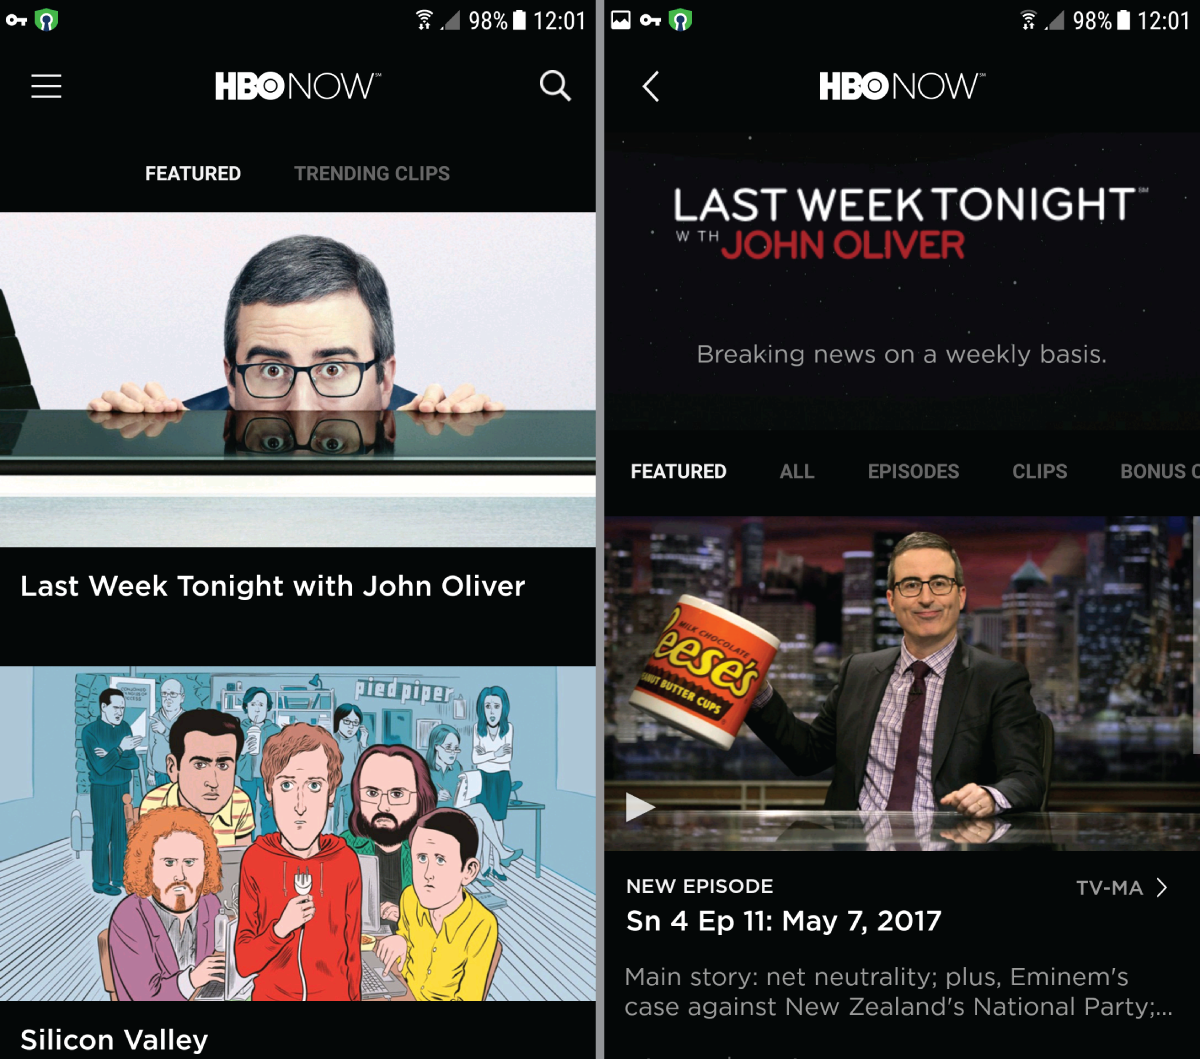 Mobile App Engagement - HBO NOW